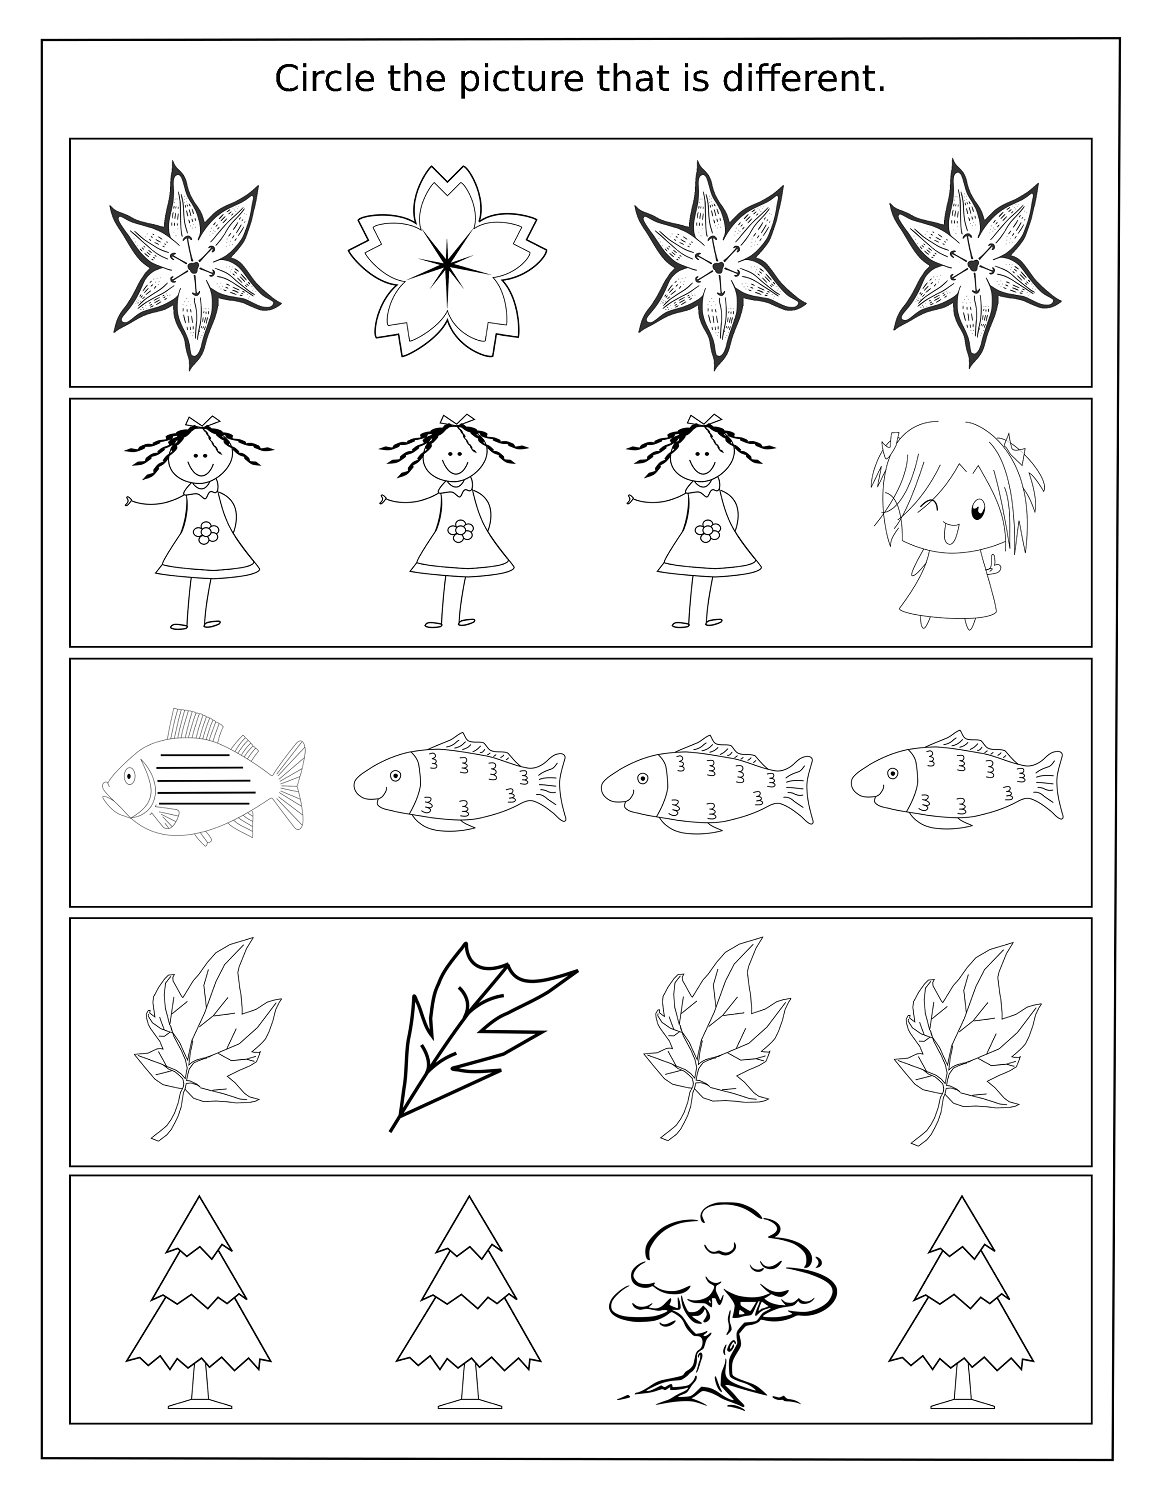 Similar Different Worksheets